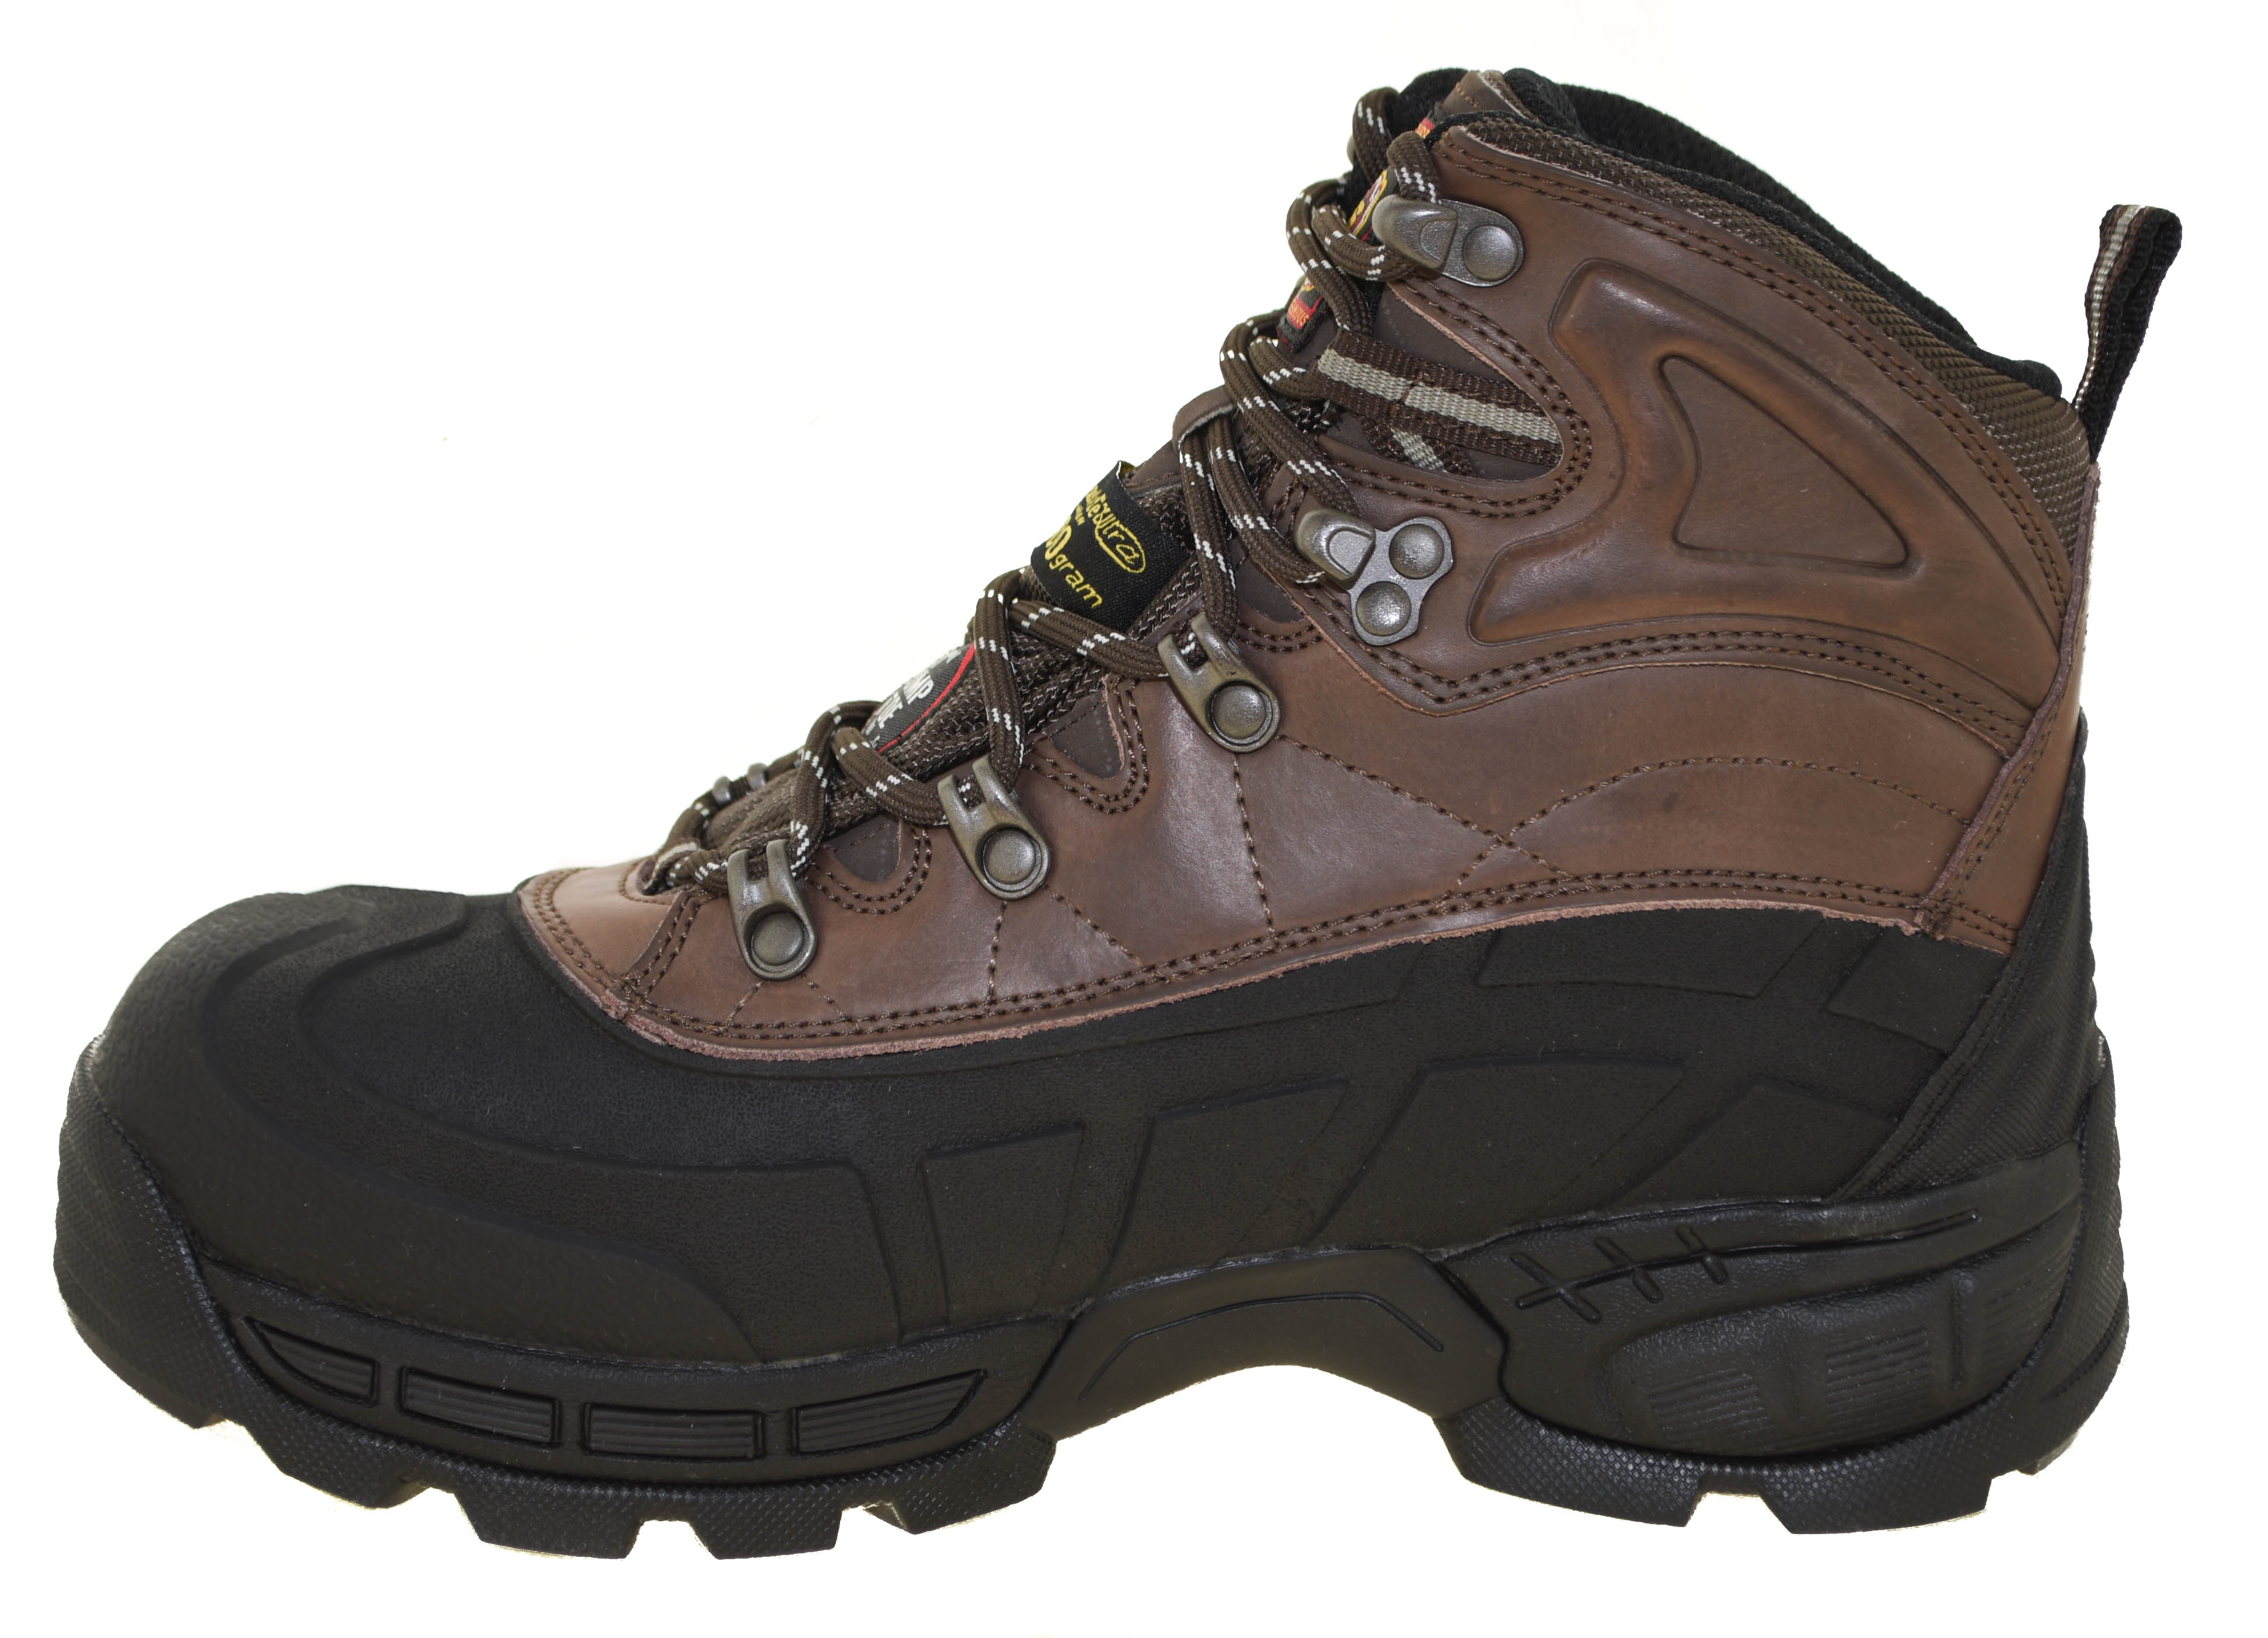 f69f1bfb6d9 Details about Skechers for Work Men's Radford Waterproof Boot Style 77050  BKBR